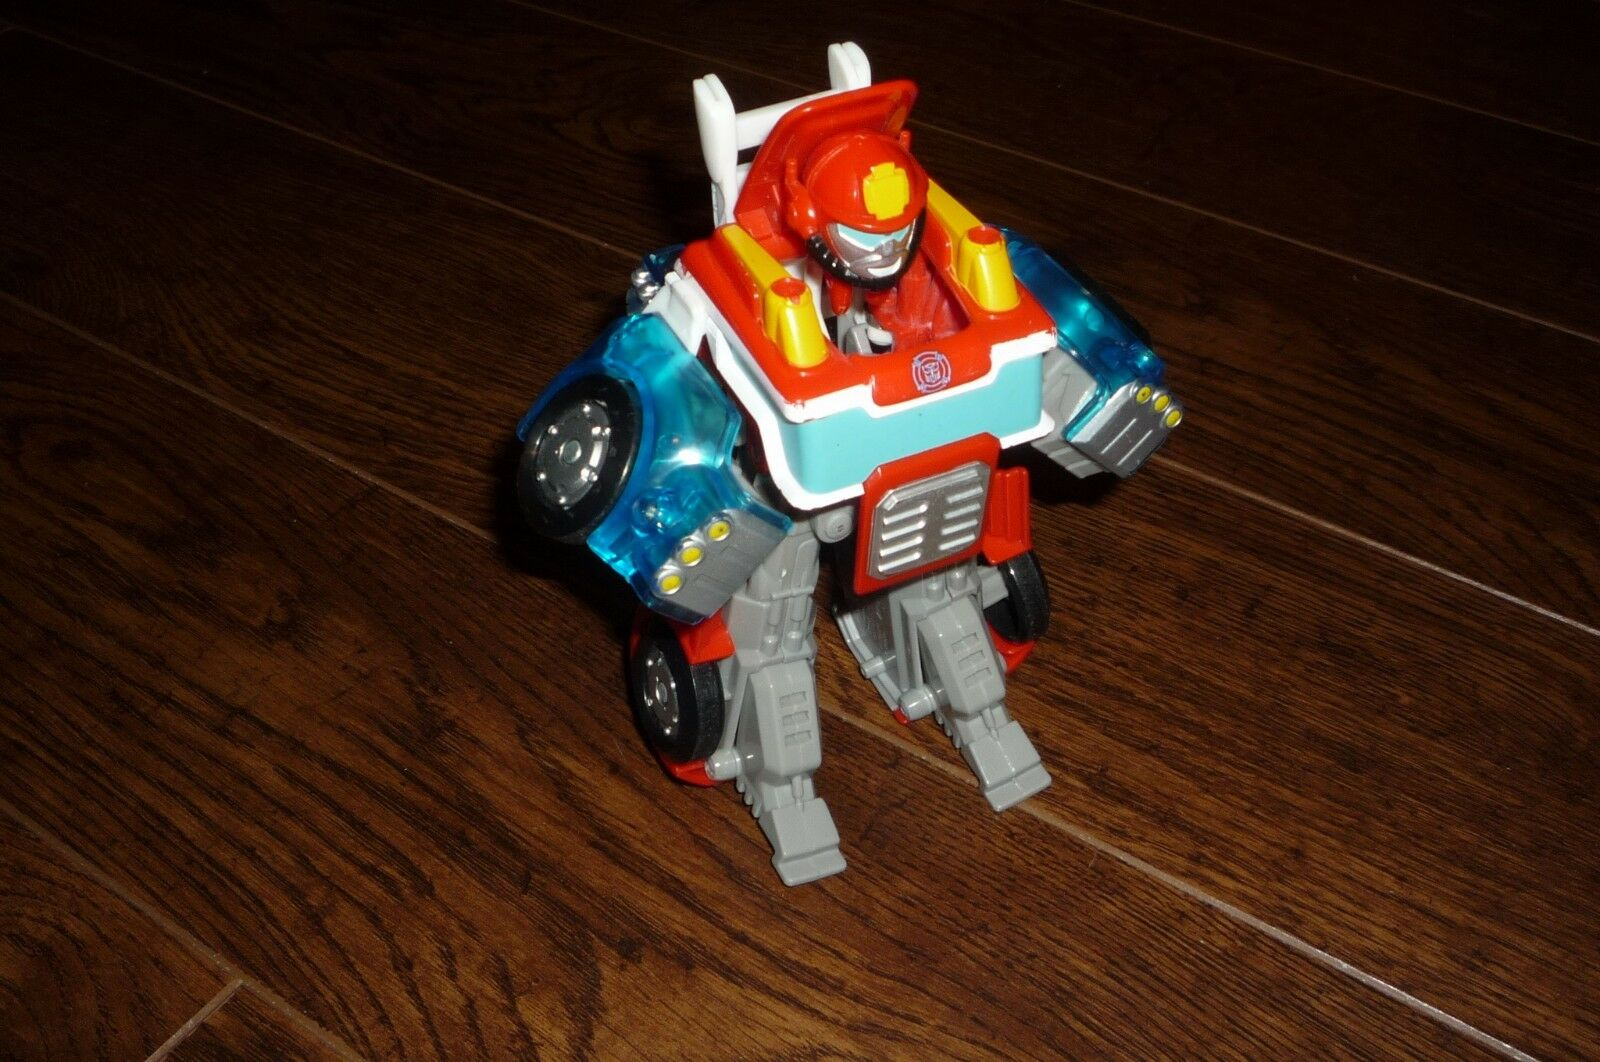 TRANSFORMERS RESCUE BOTS HEATWAVE 1ST SERIE LOOSE ORIGINAL 2011 RARE PLAYSKOOL